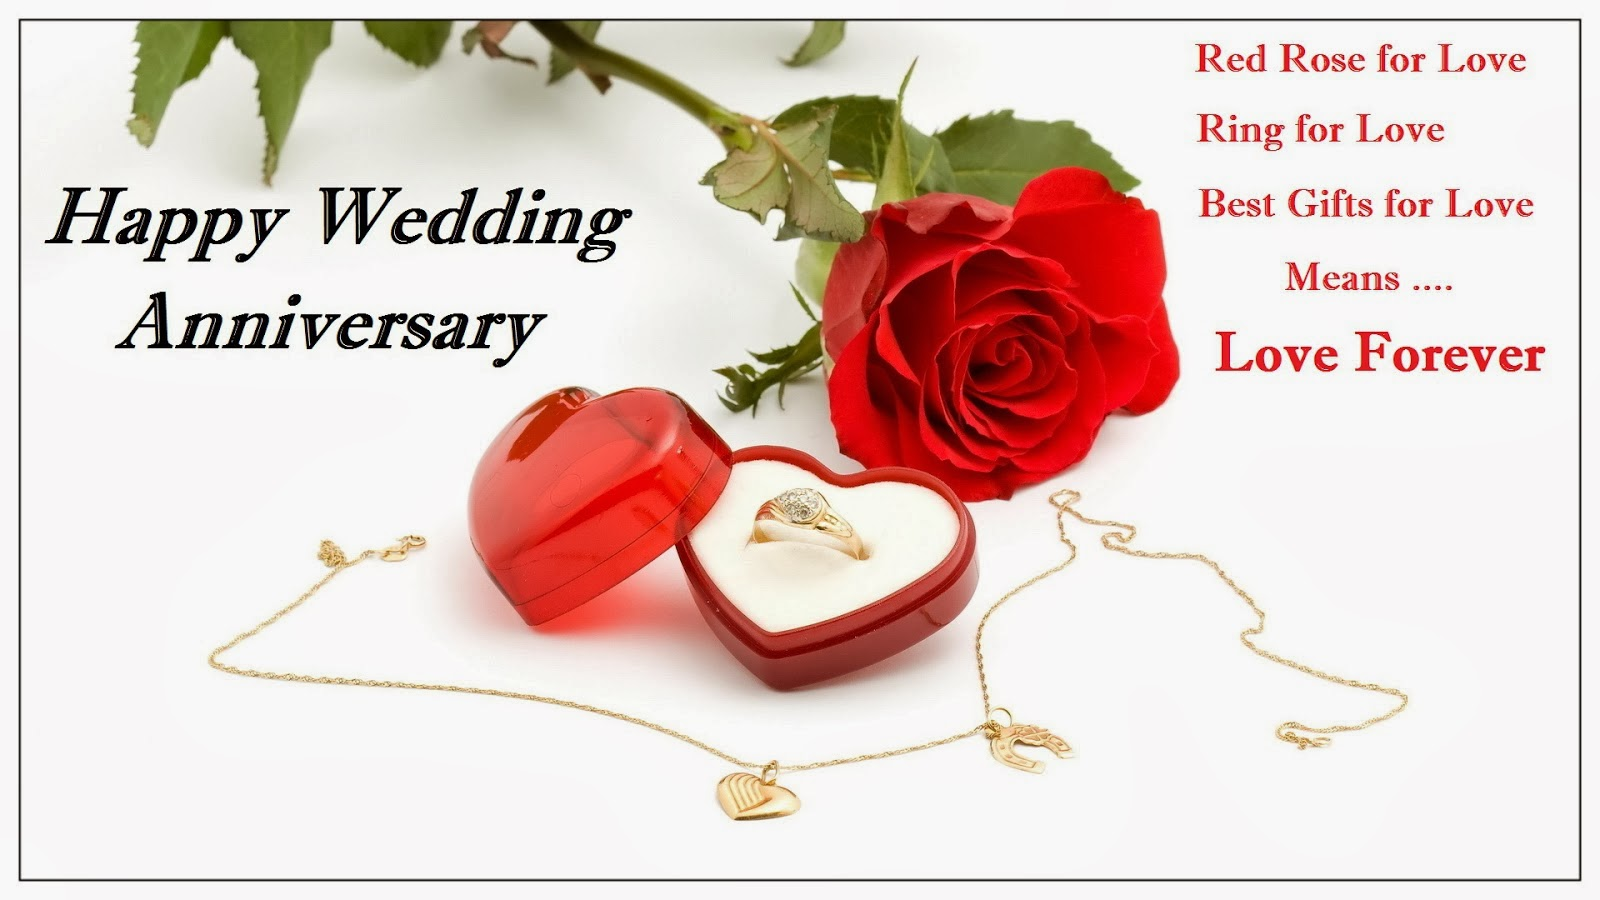 1st Wedding Anniversary Gifts For Him In India : 1st wedding anniversary celebration ideas in india Top wedding ...